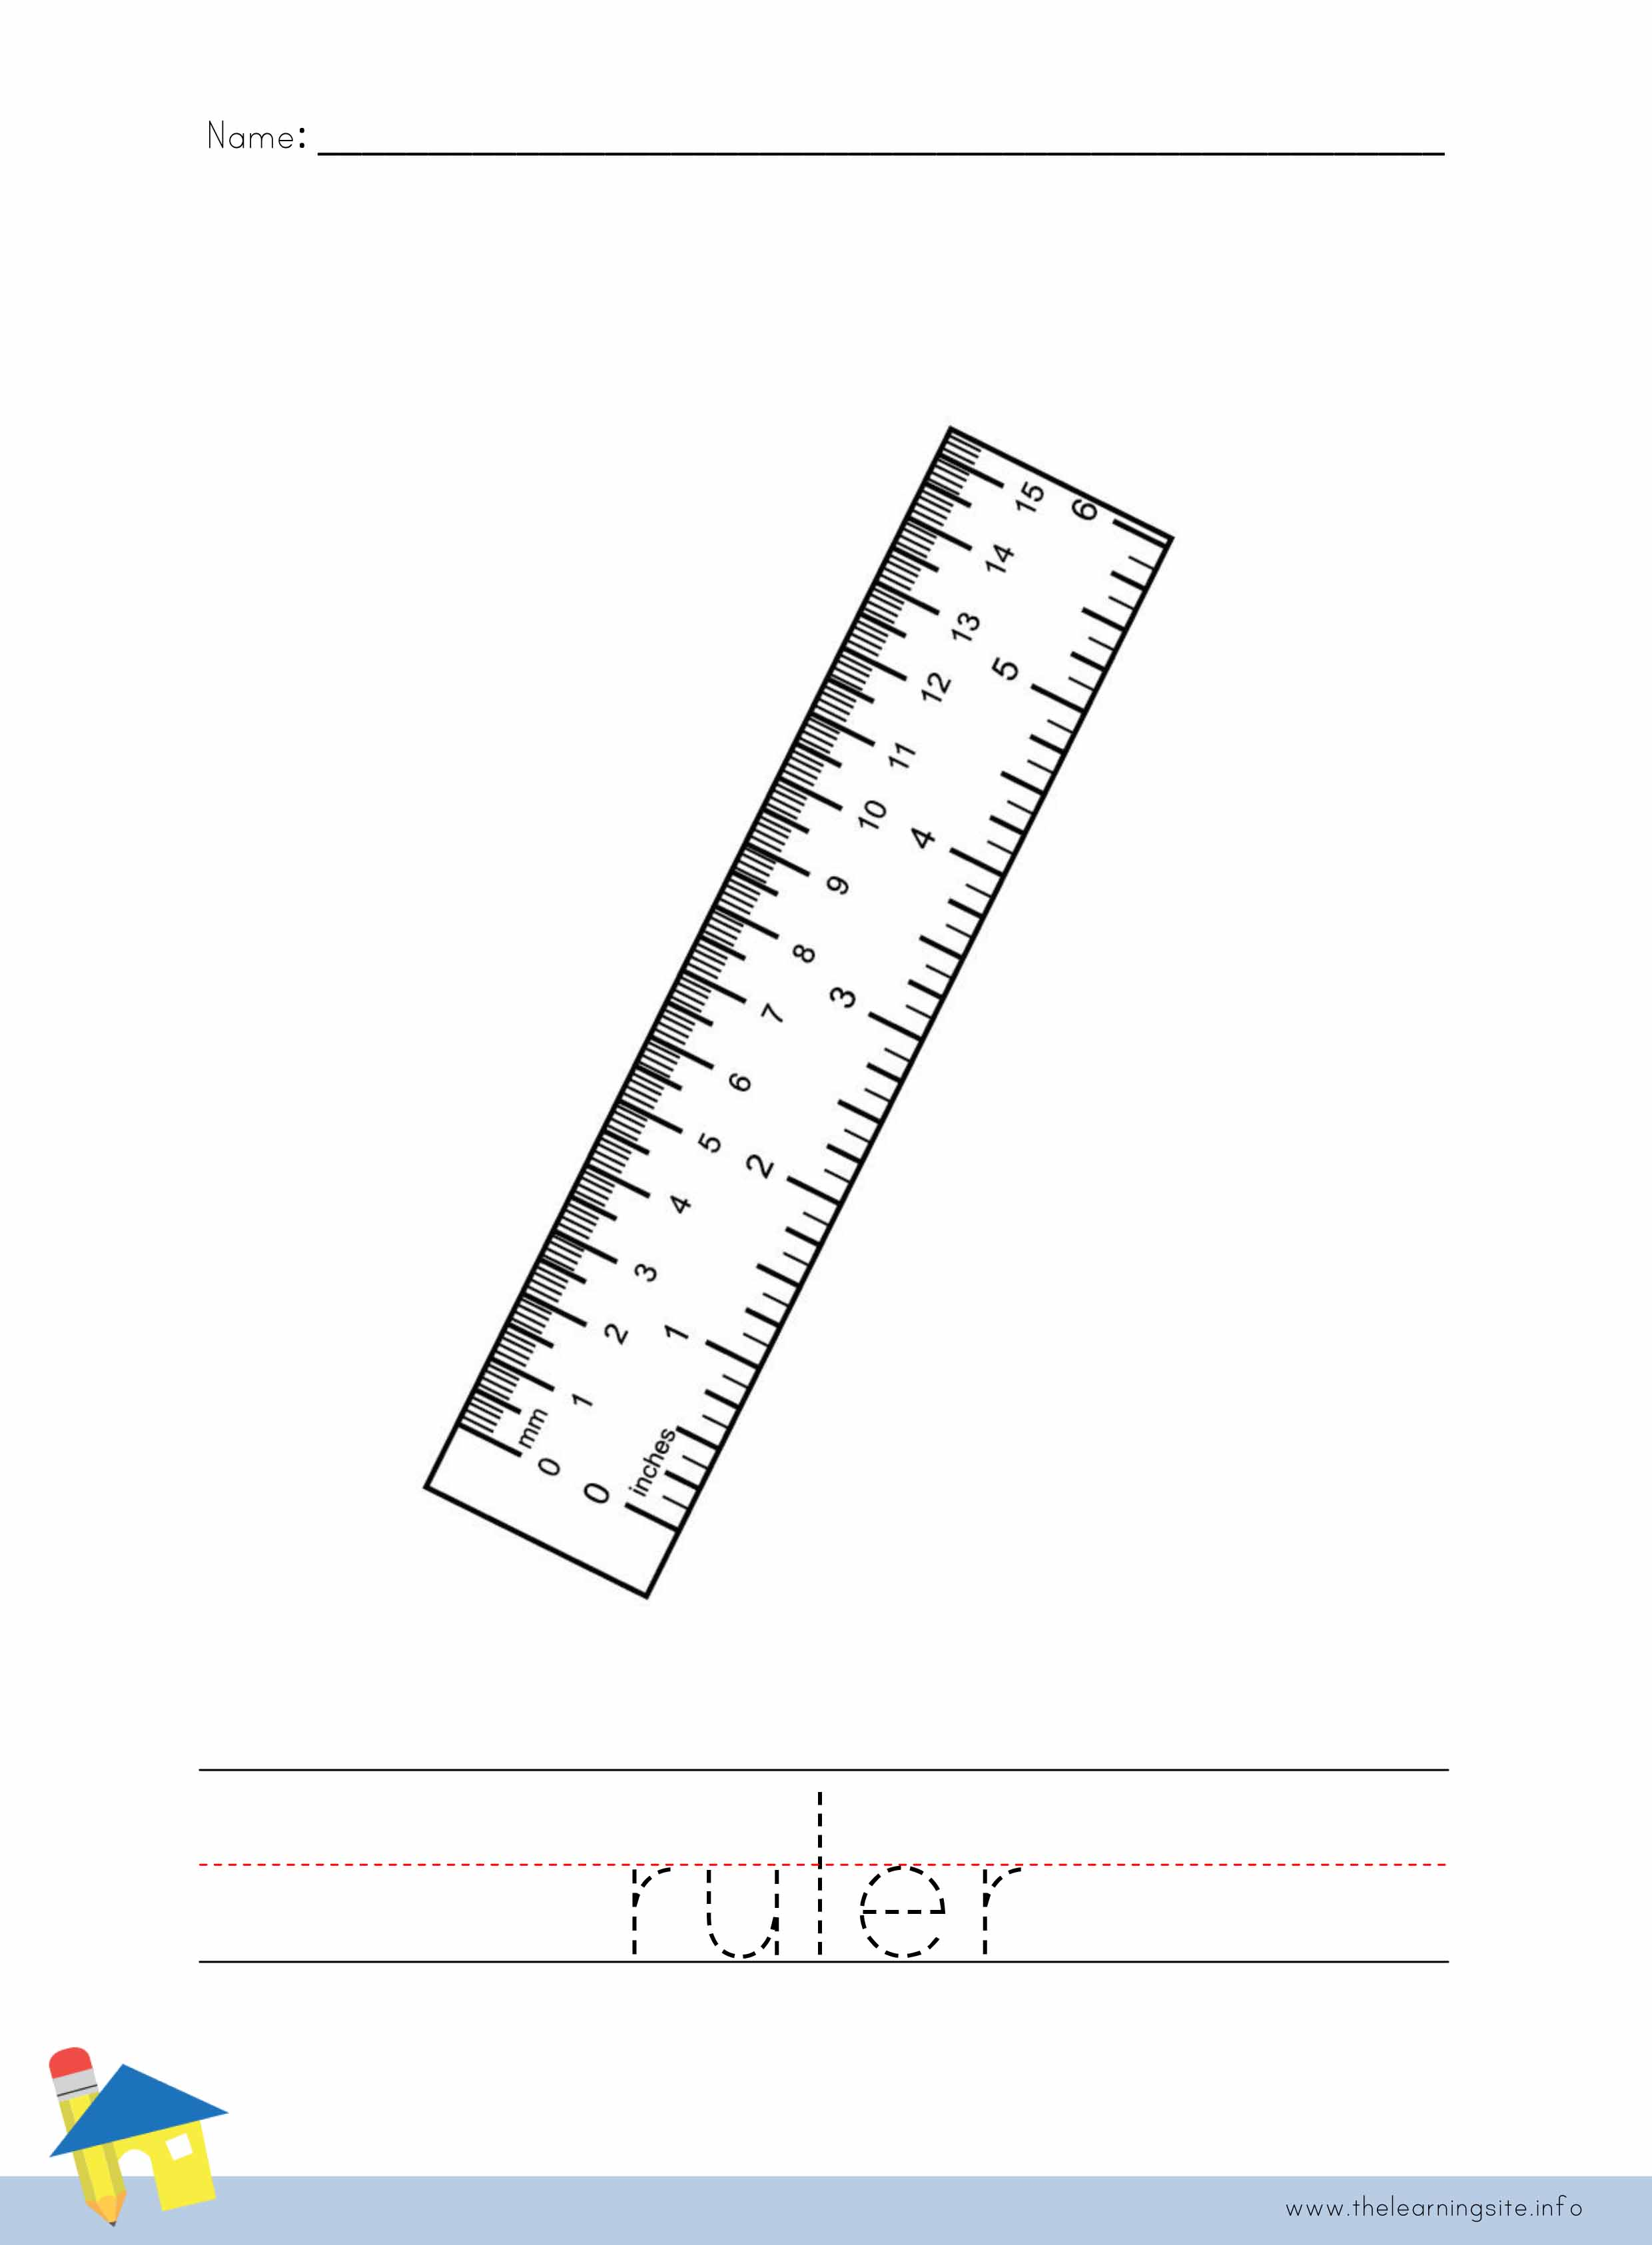 Uncategorized Ruler Worksheets the learning site ruler coloring worksheet